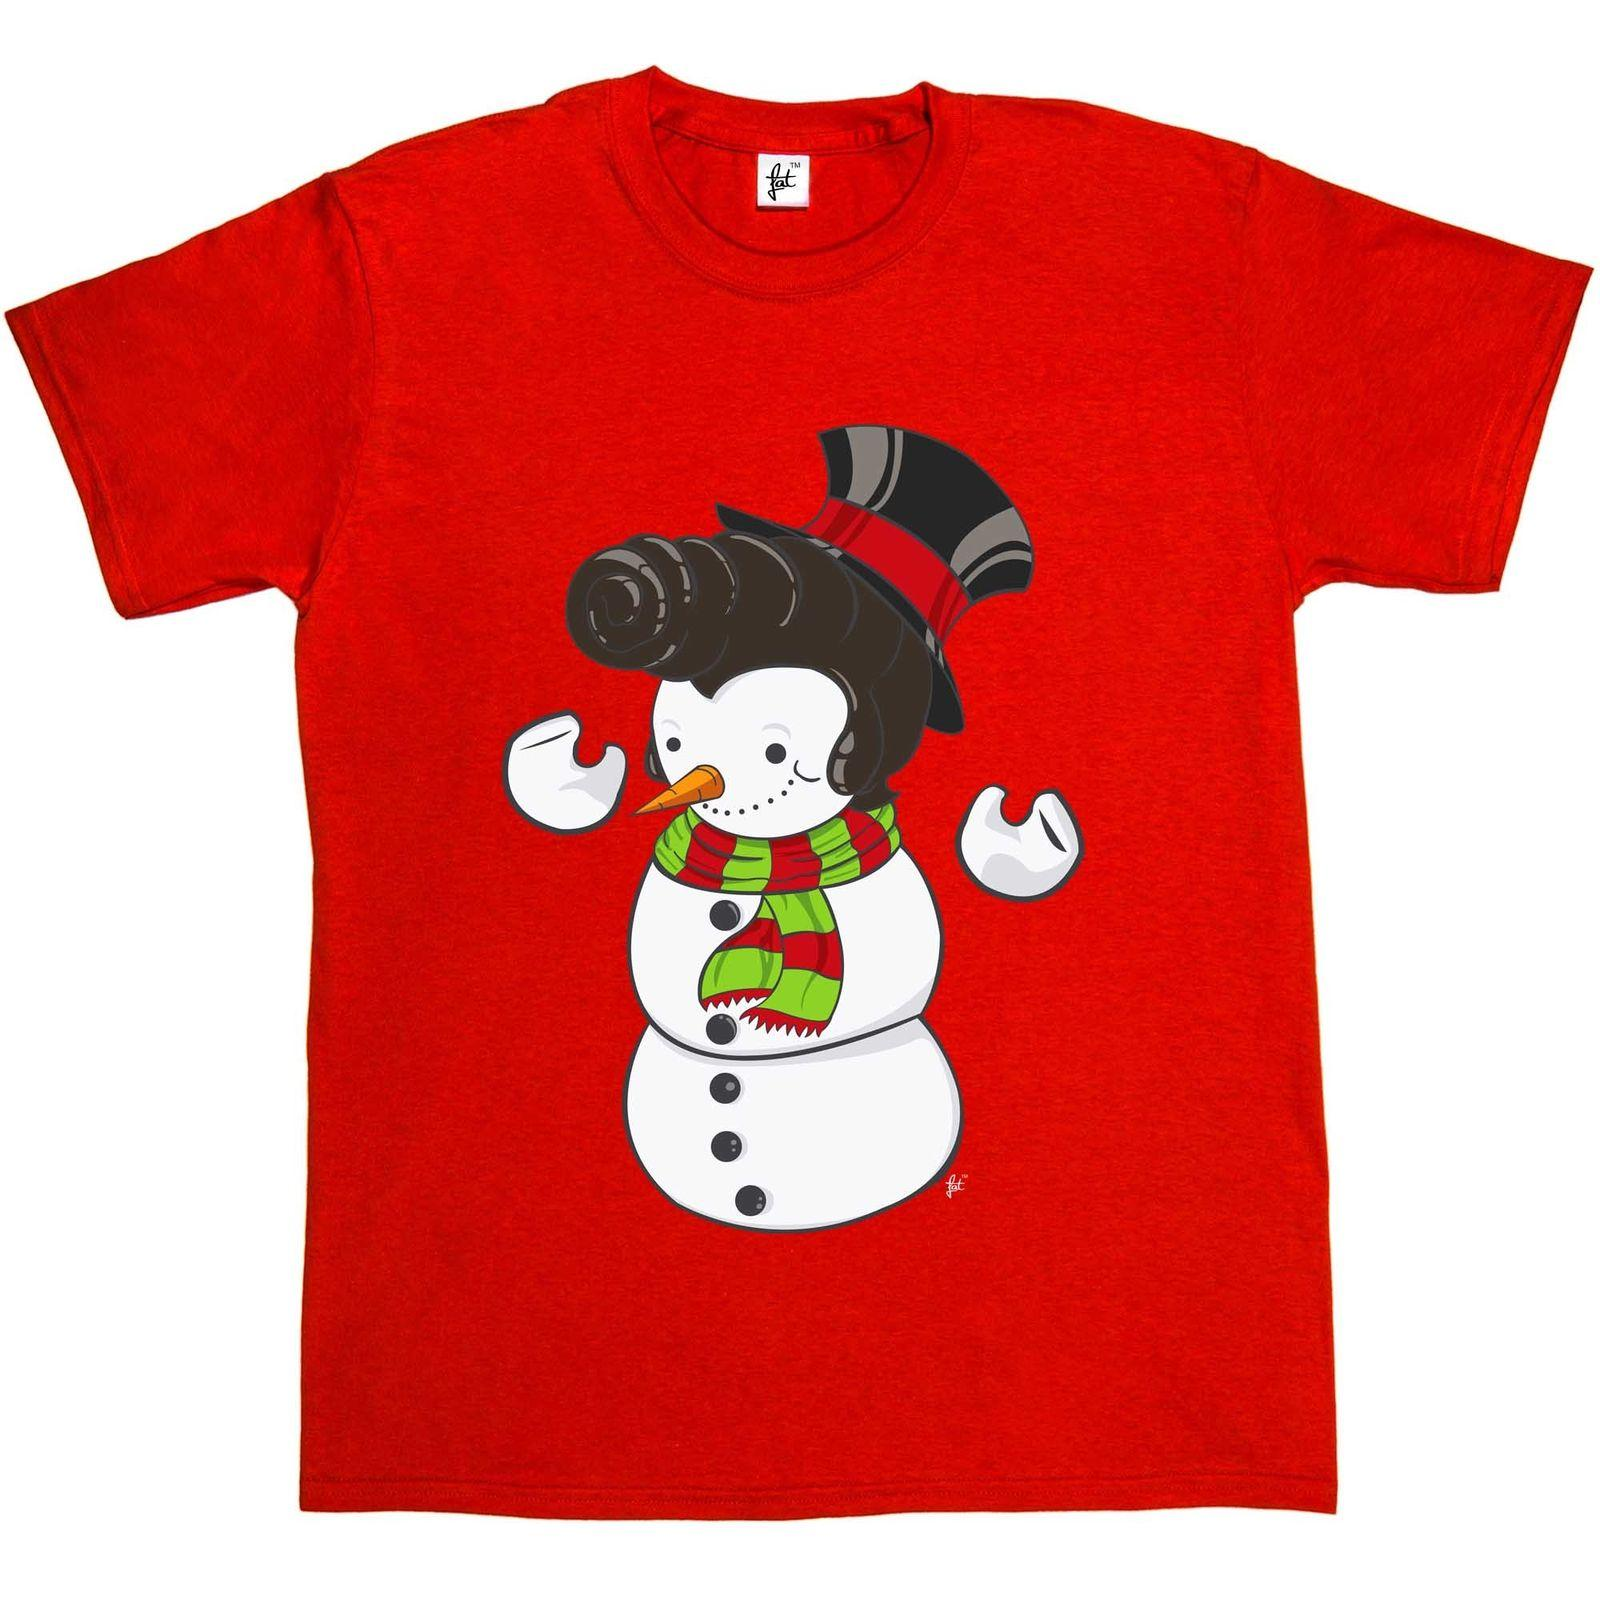 Elvis Presley Christmas Music.Snowman With Elvis Presley Type Quiff Hair Smiling Christmas Music Mens T Shirtsize Discout Hot New Tshirt Top Free Shipping T Shirt